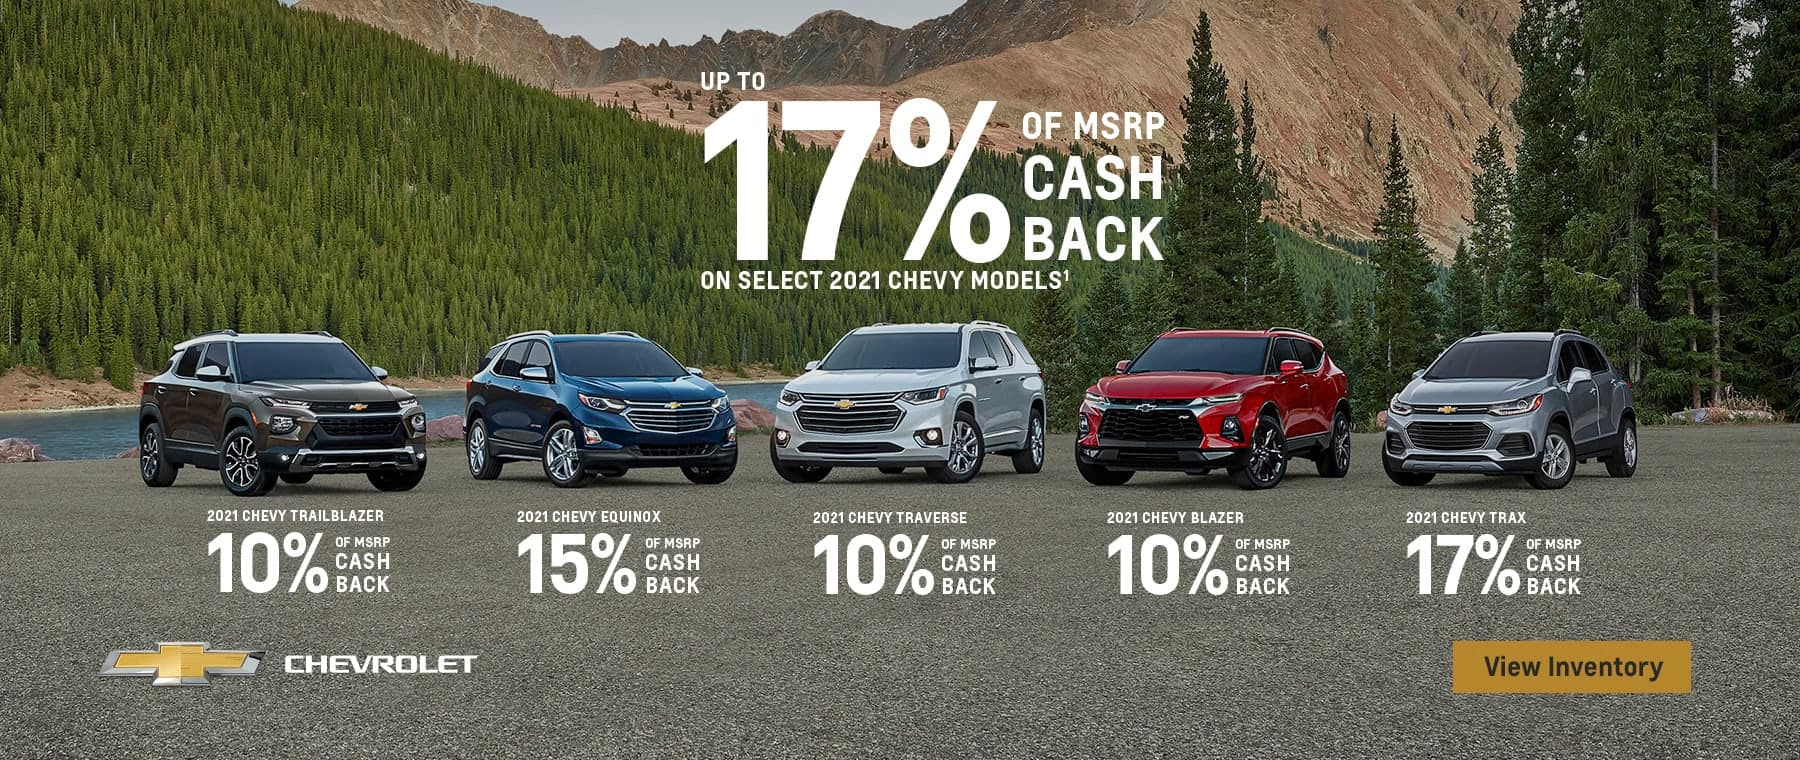 Up to 17% of MSRP cash back on select 2021 Chevy models.